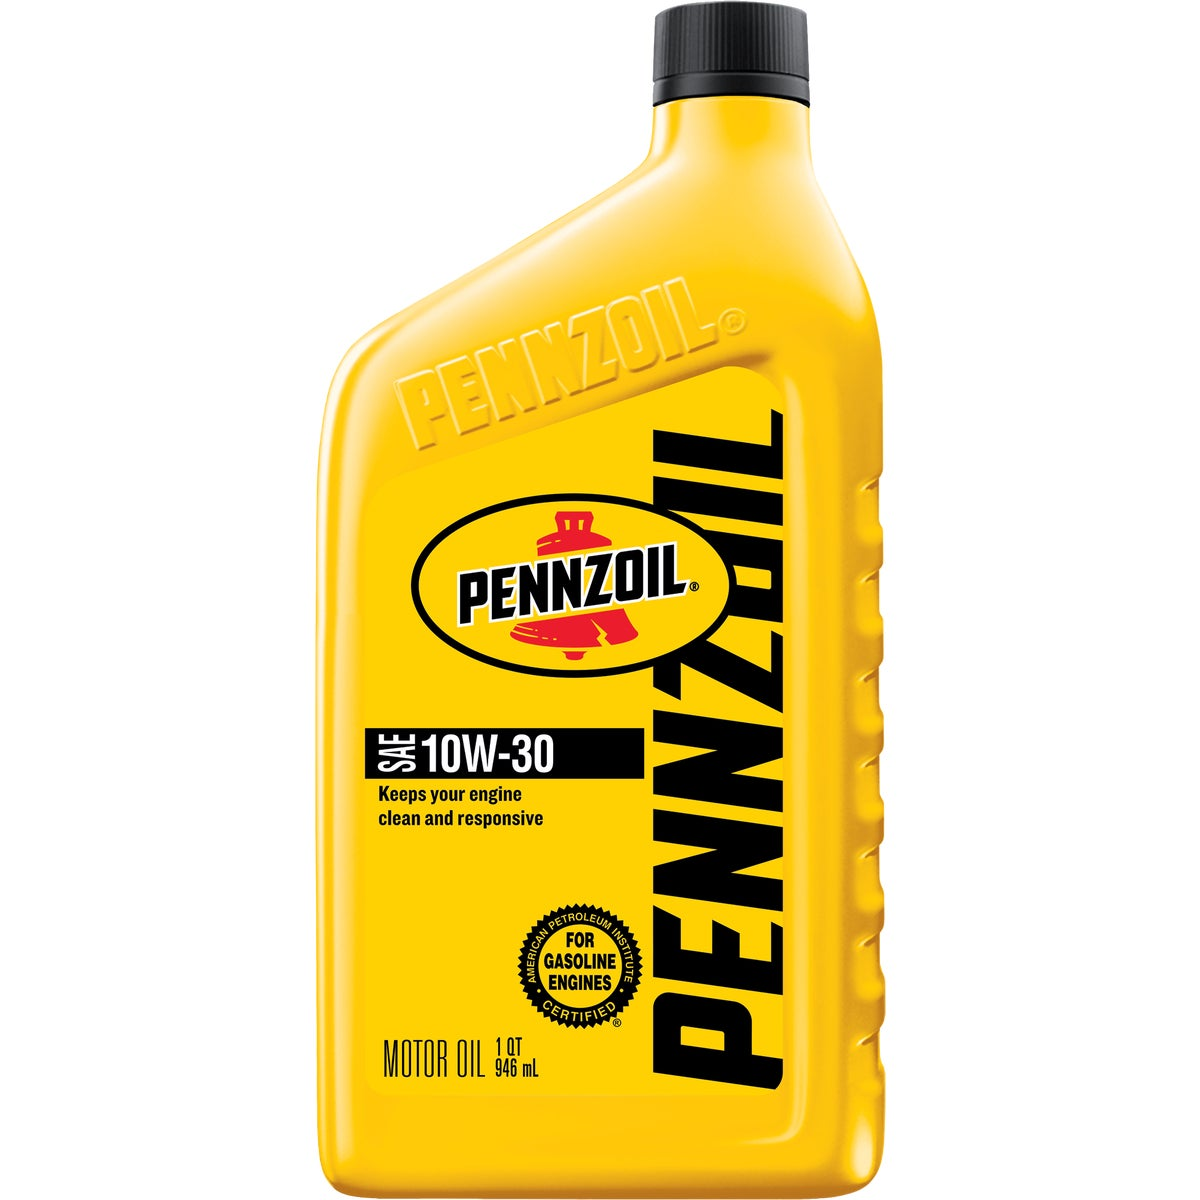 10W30 PENNZOIL MOTOR OIL - 550022792 by Sopus Products/ Lub